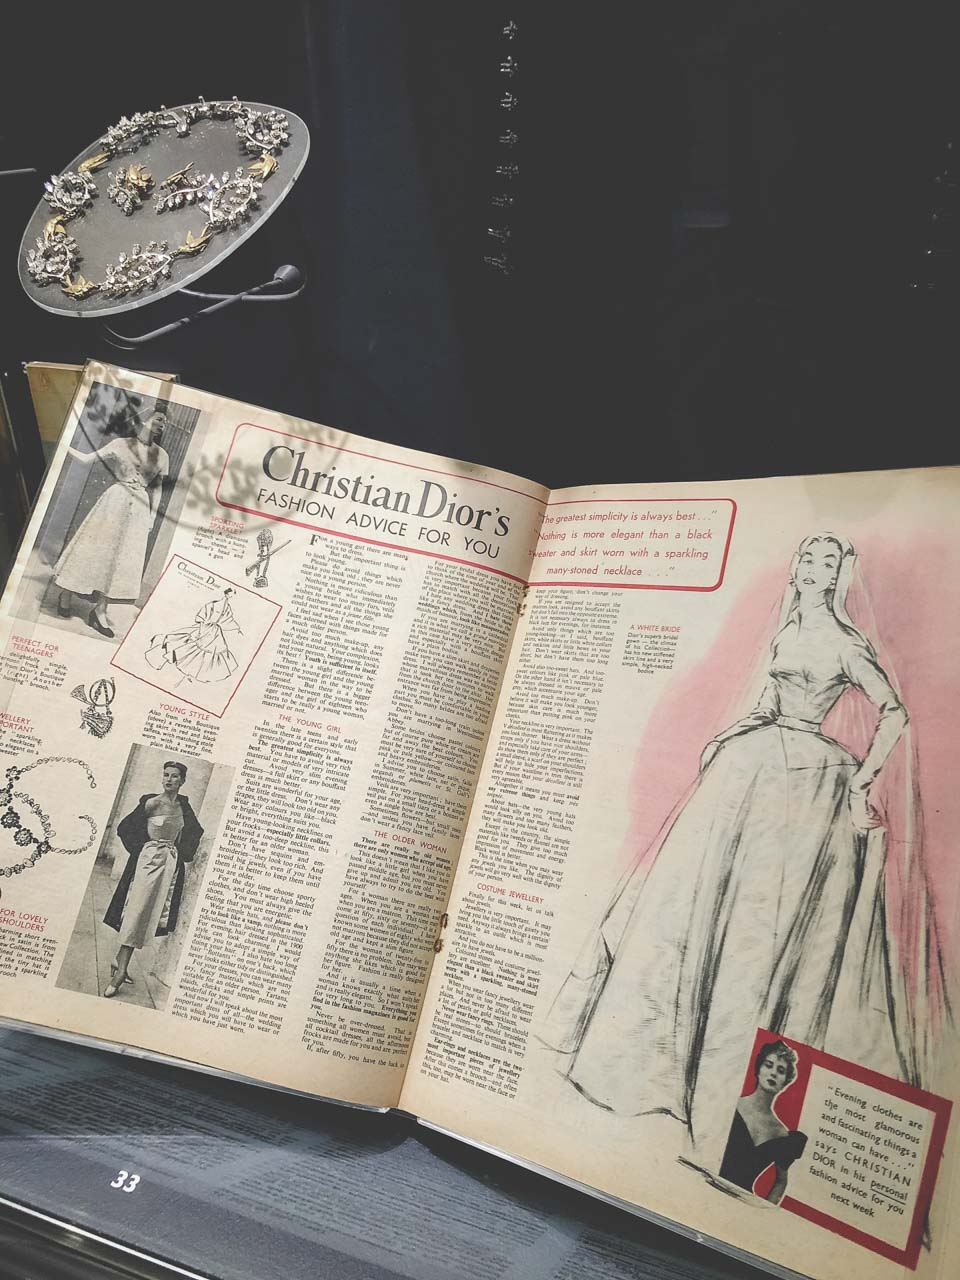 A book with Christian Dior's fashion advice on display at the Victoria and Albert Museum in London